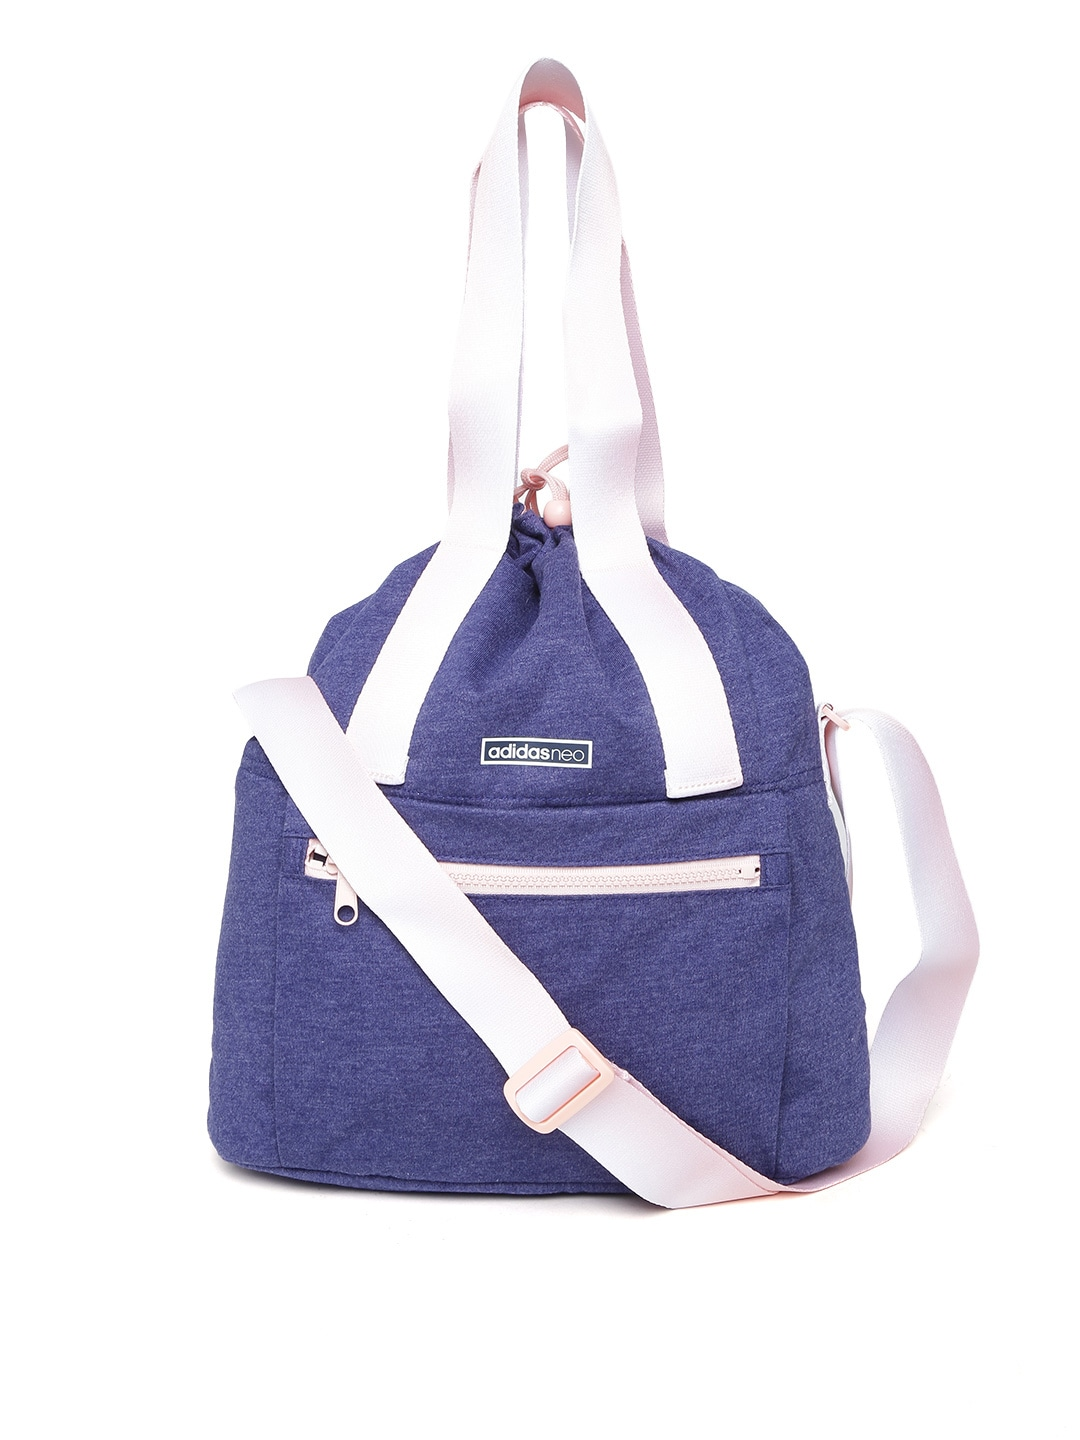 Adidas neo az0928 Blue Studio Shoulder Bag - Best Price in India ... 0bb36d2843eed